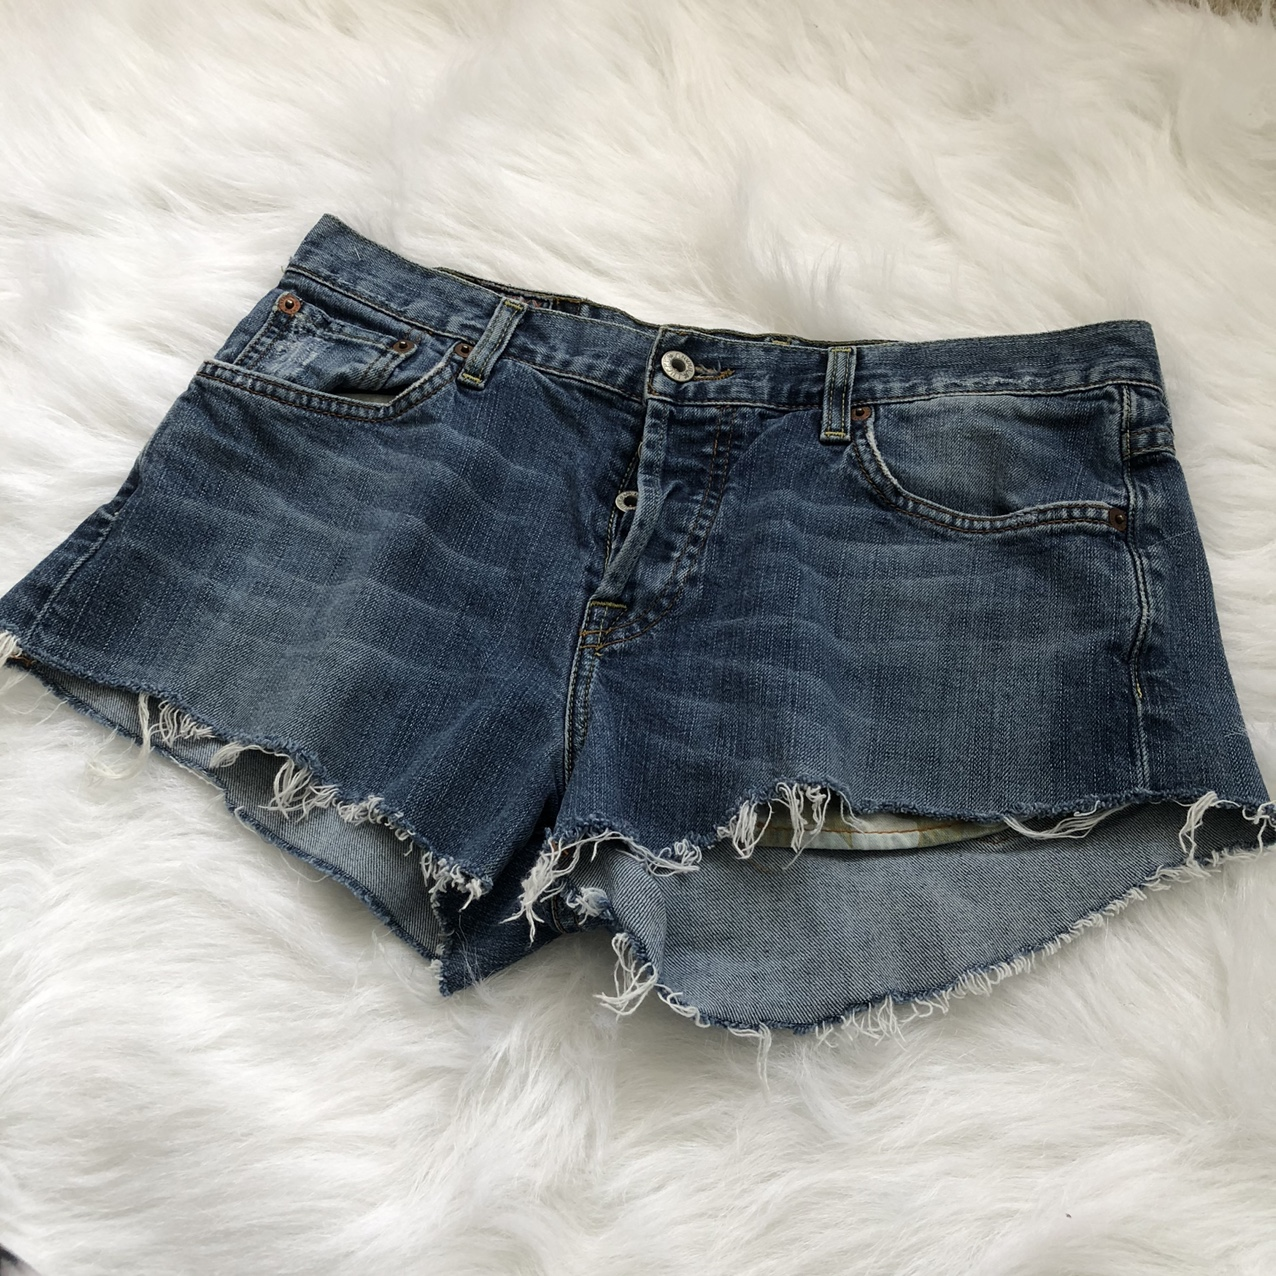 Product Image 1 - Lucky brand adorable denim shorts